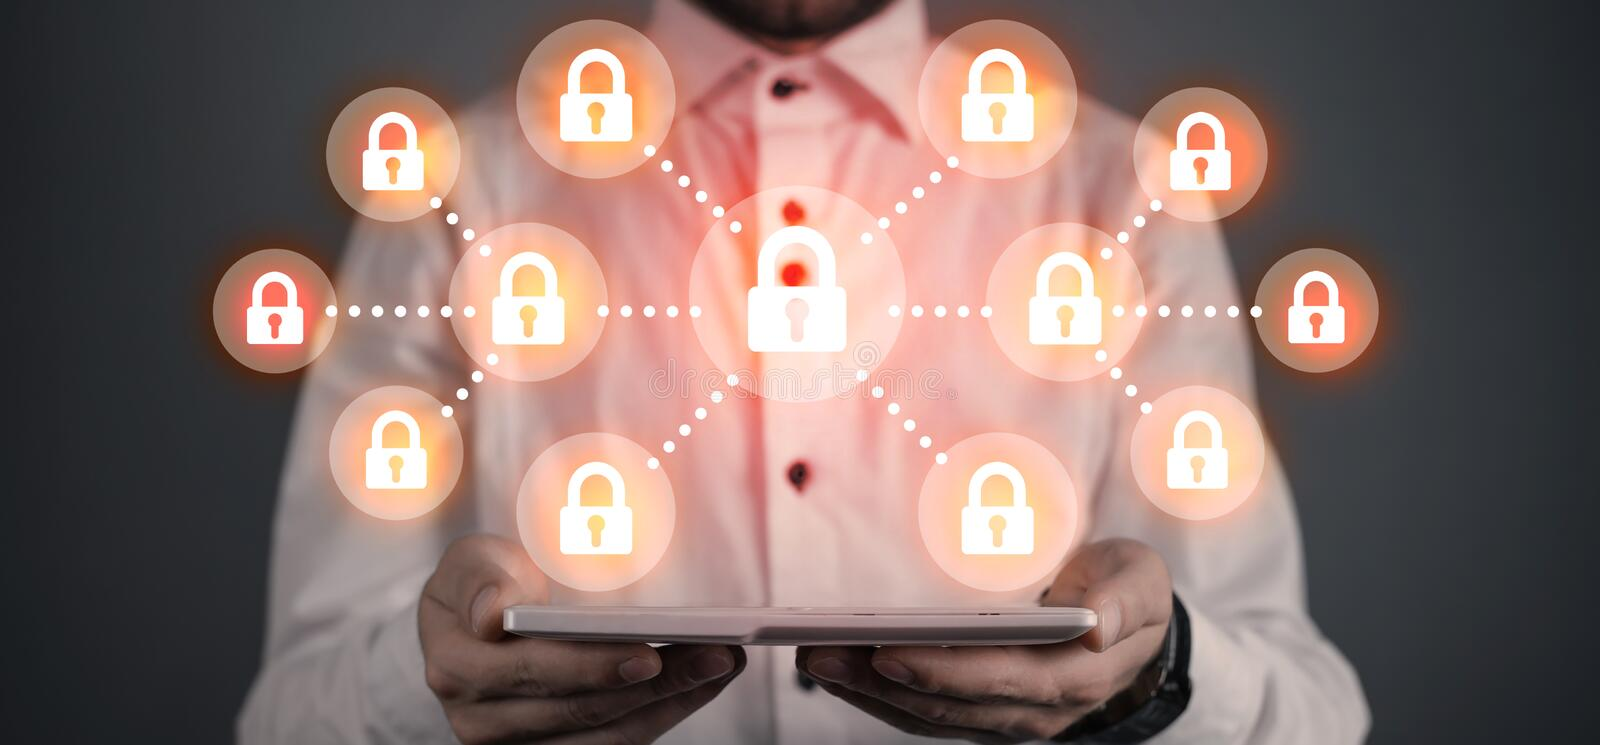 Technology security concept. Business concept stock images